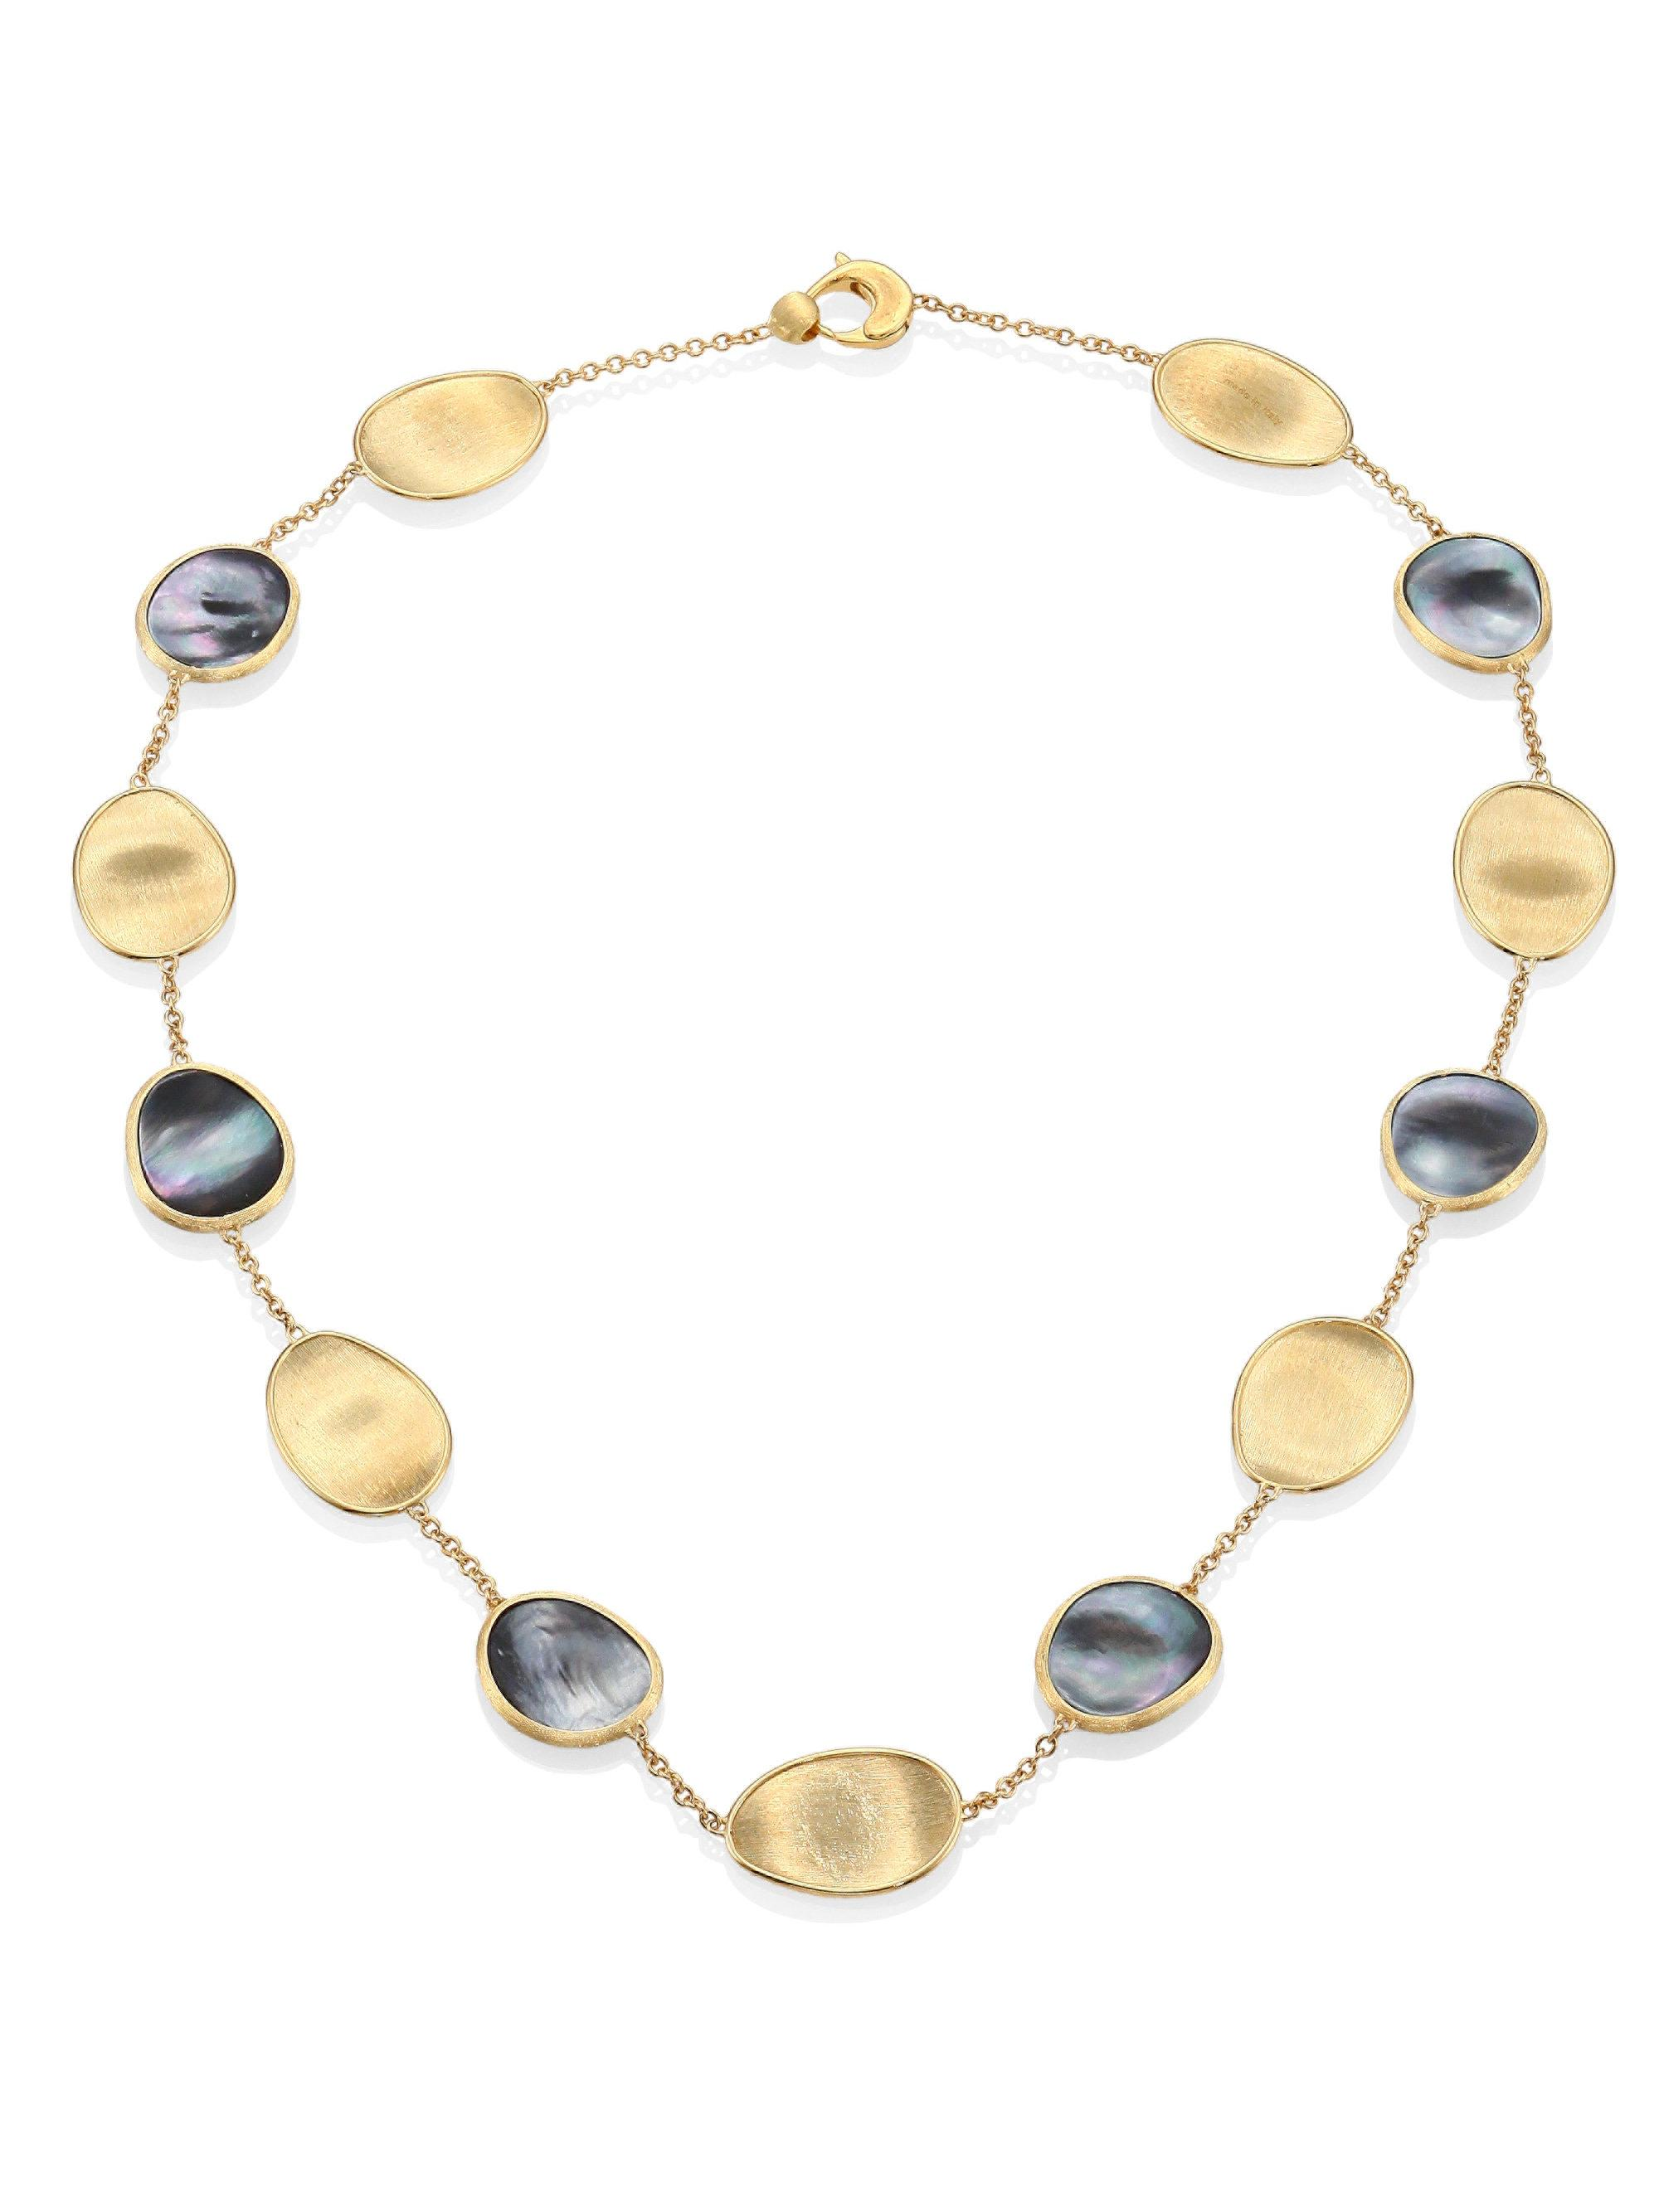 Marco Bicego Lunaria 18k Gold Collar Necklace with Black Mother-of-Pearl & Diamond LaV4FHj